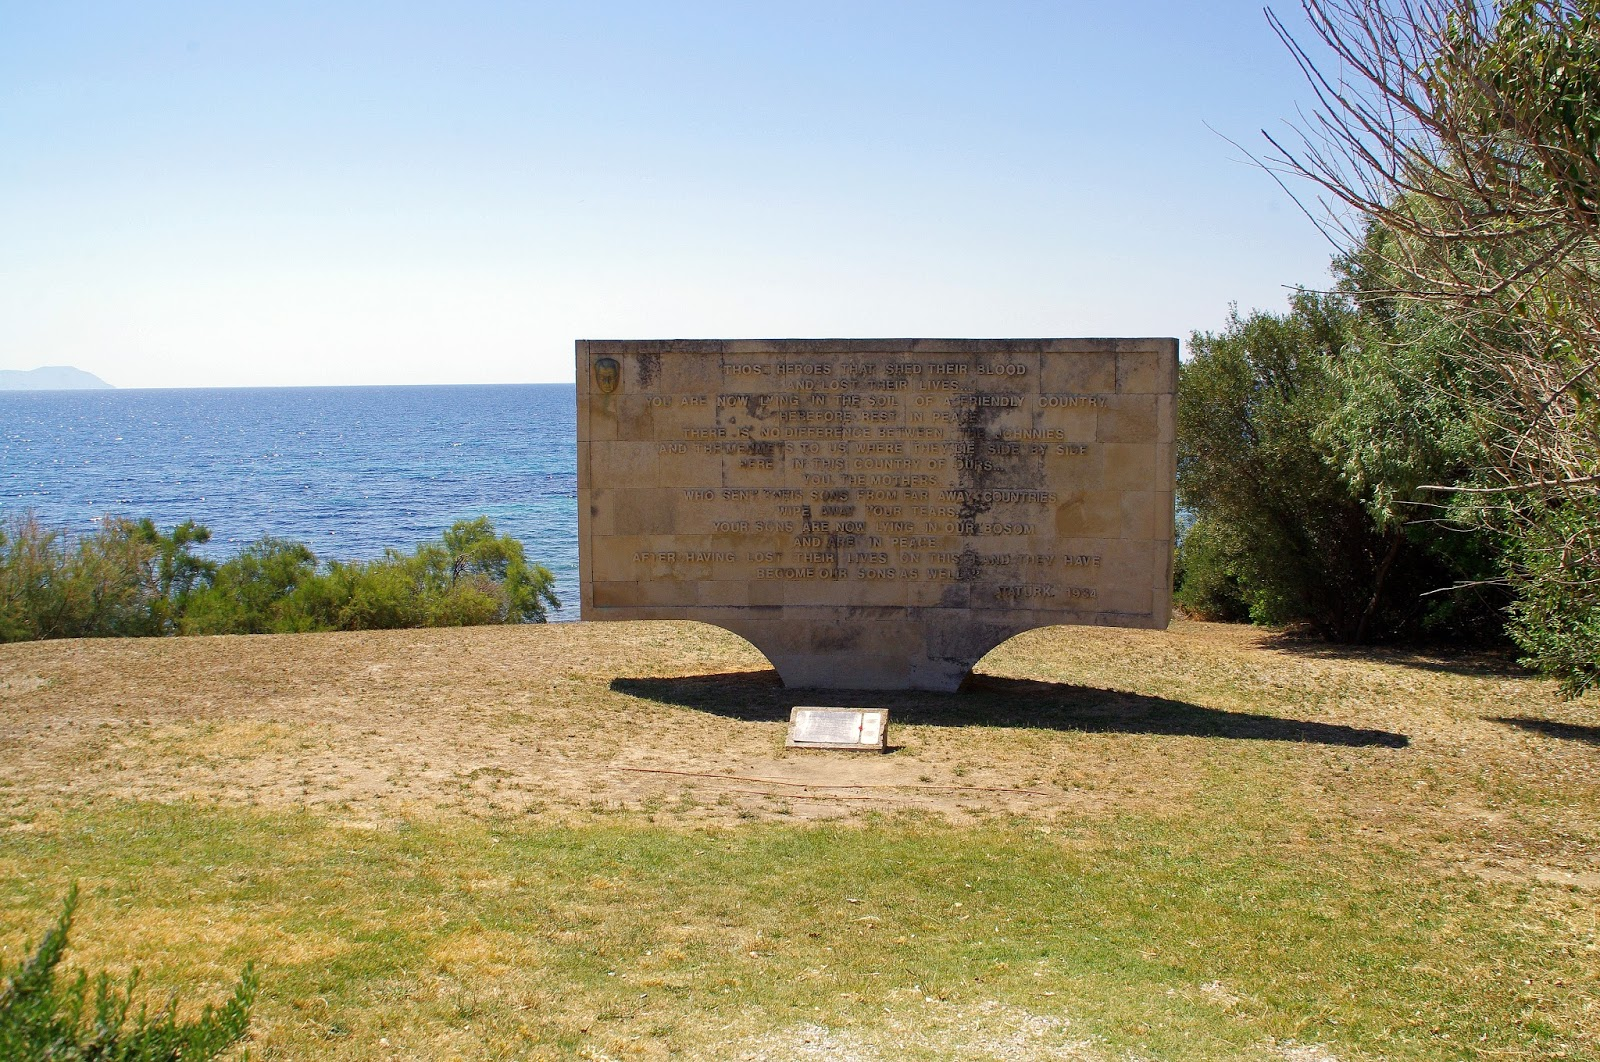 Ataturk Quote Memorial at Gallipoli